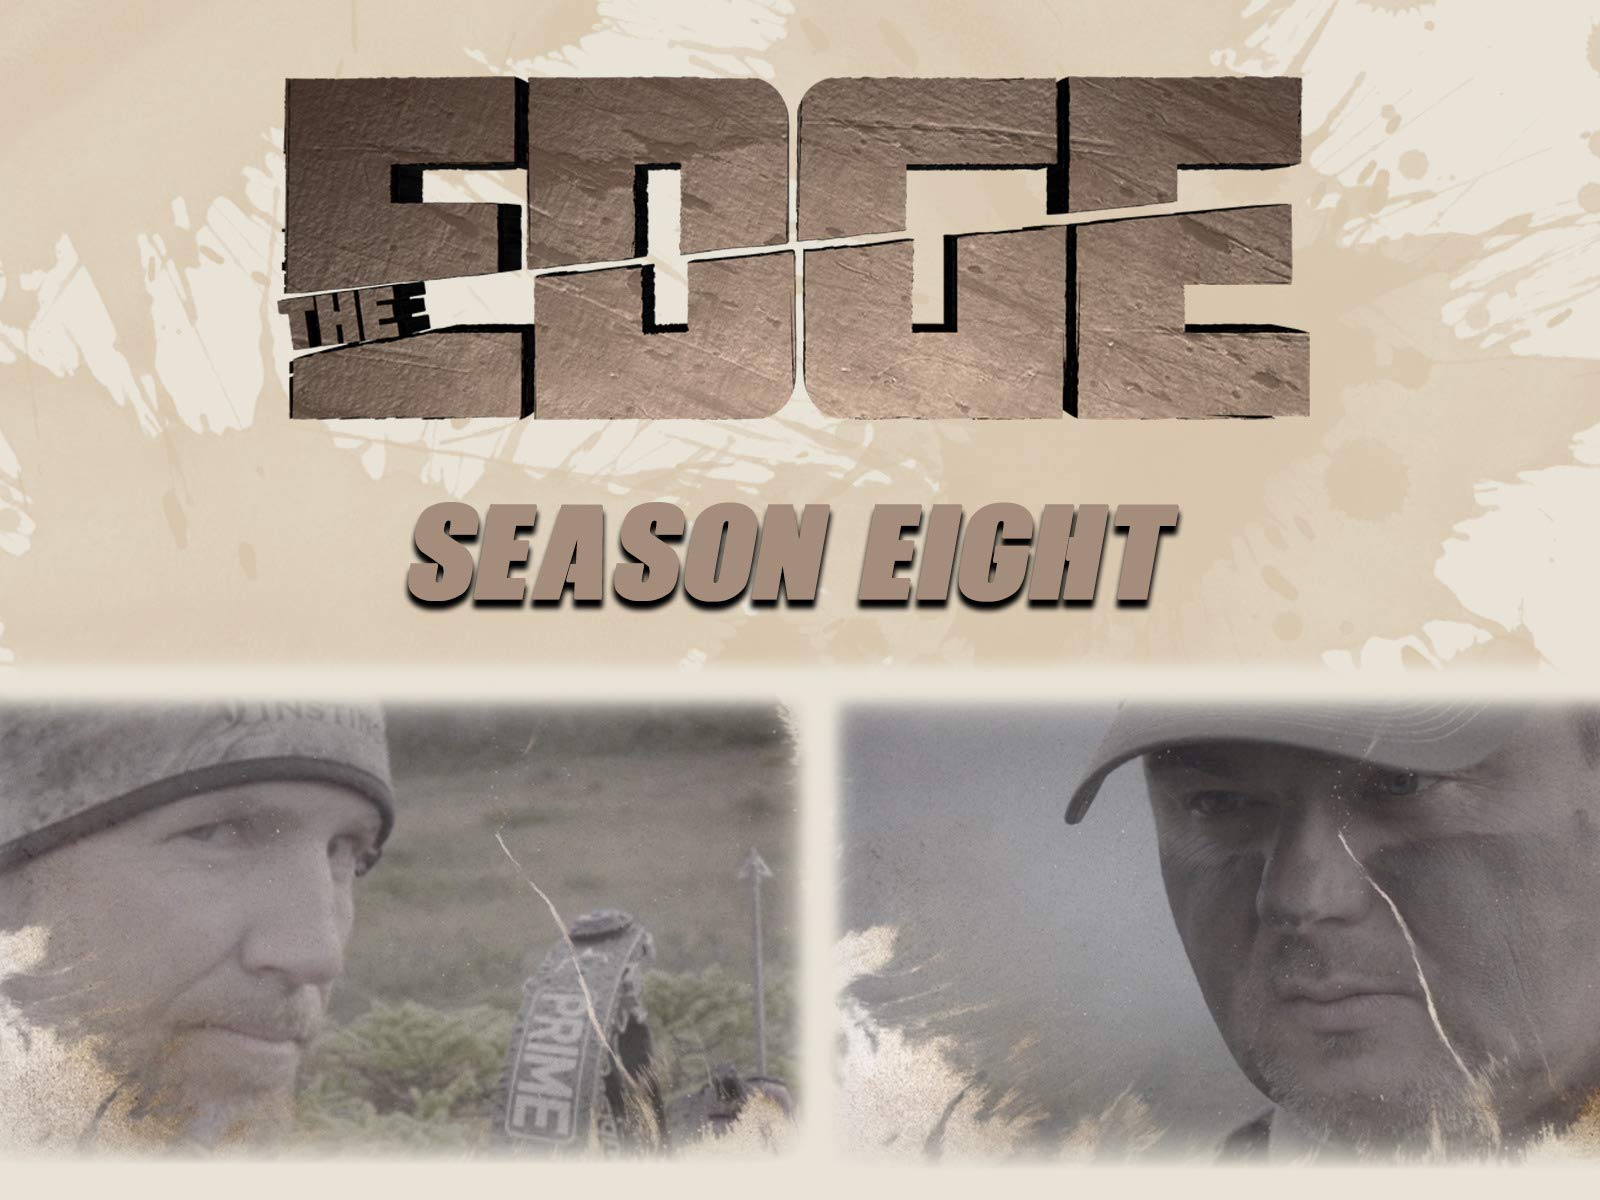 The Edge - Season 8